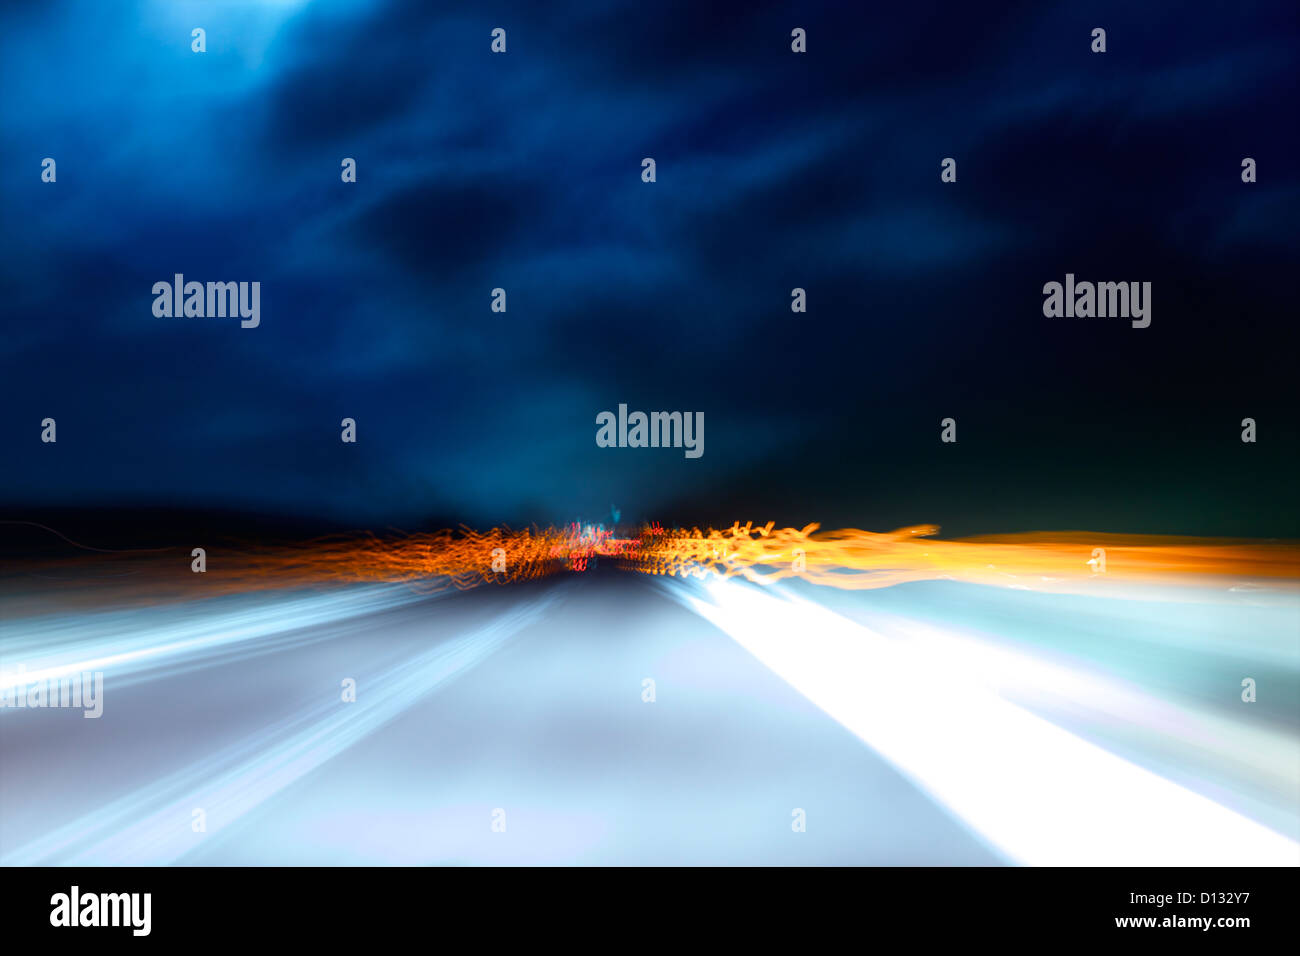 Motion blur of highway scene - Stock Image